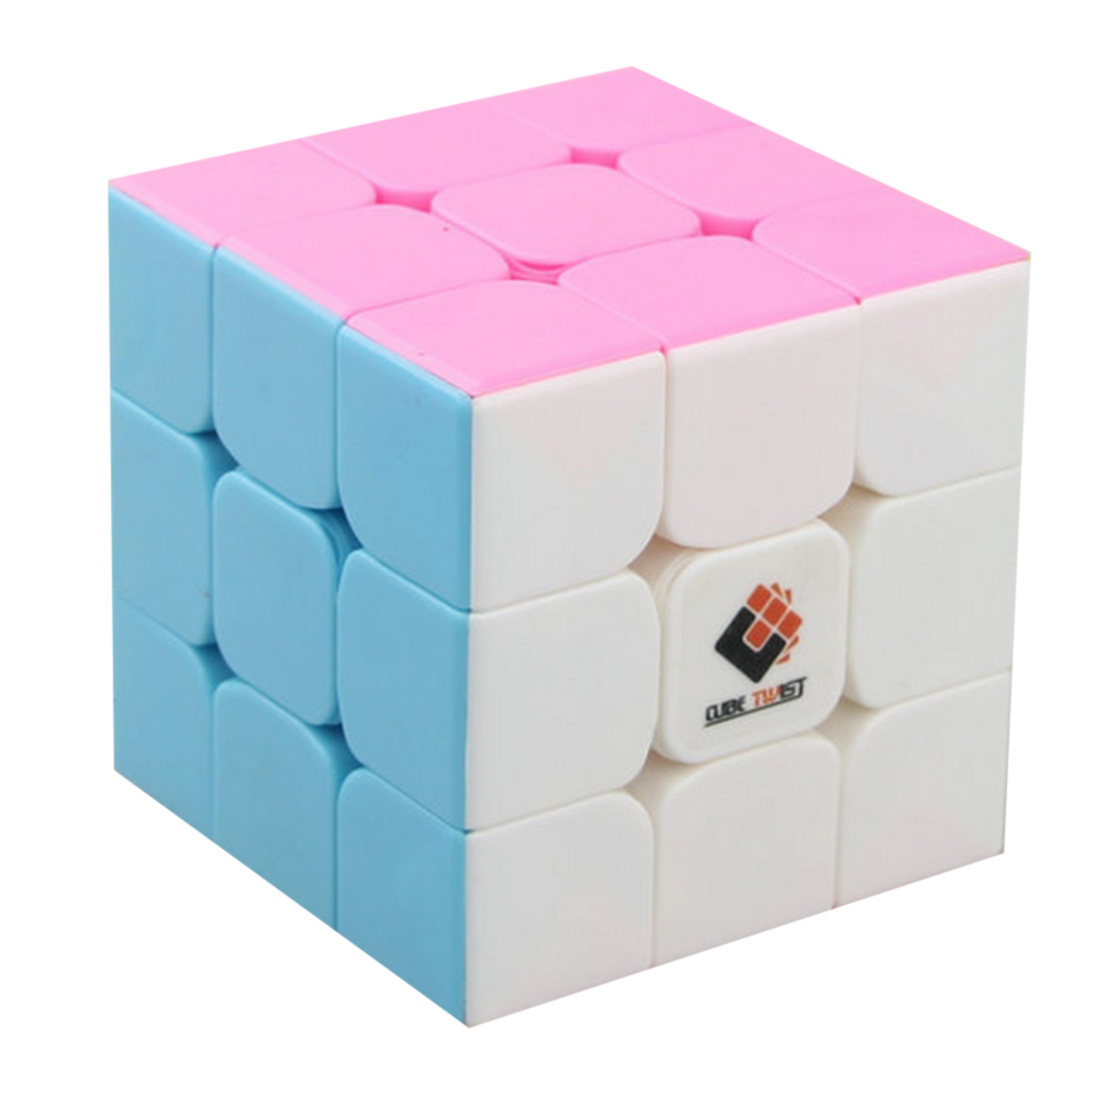 Cube Twist Heibao Professional Design 3x3 Magic Cube Puzzle Toys For Challenging - Colorful